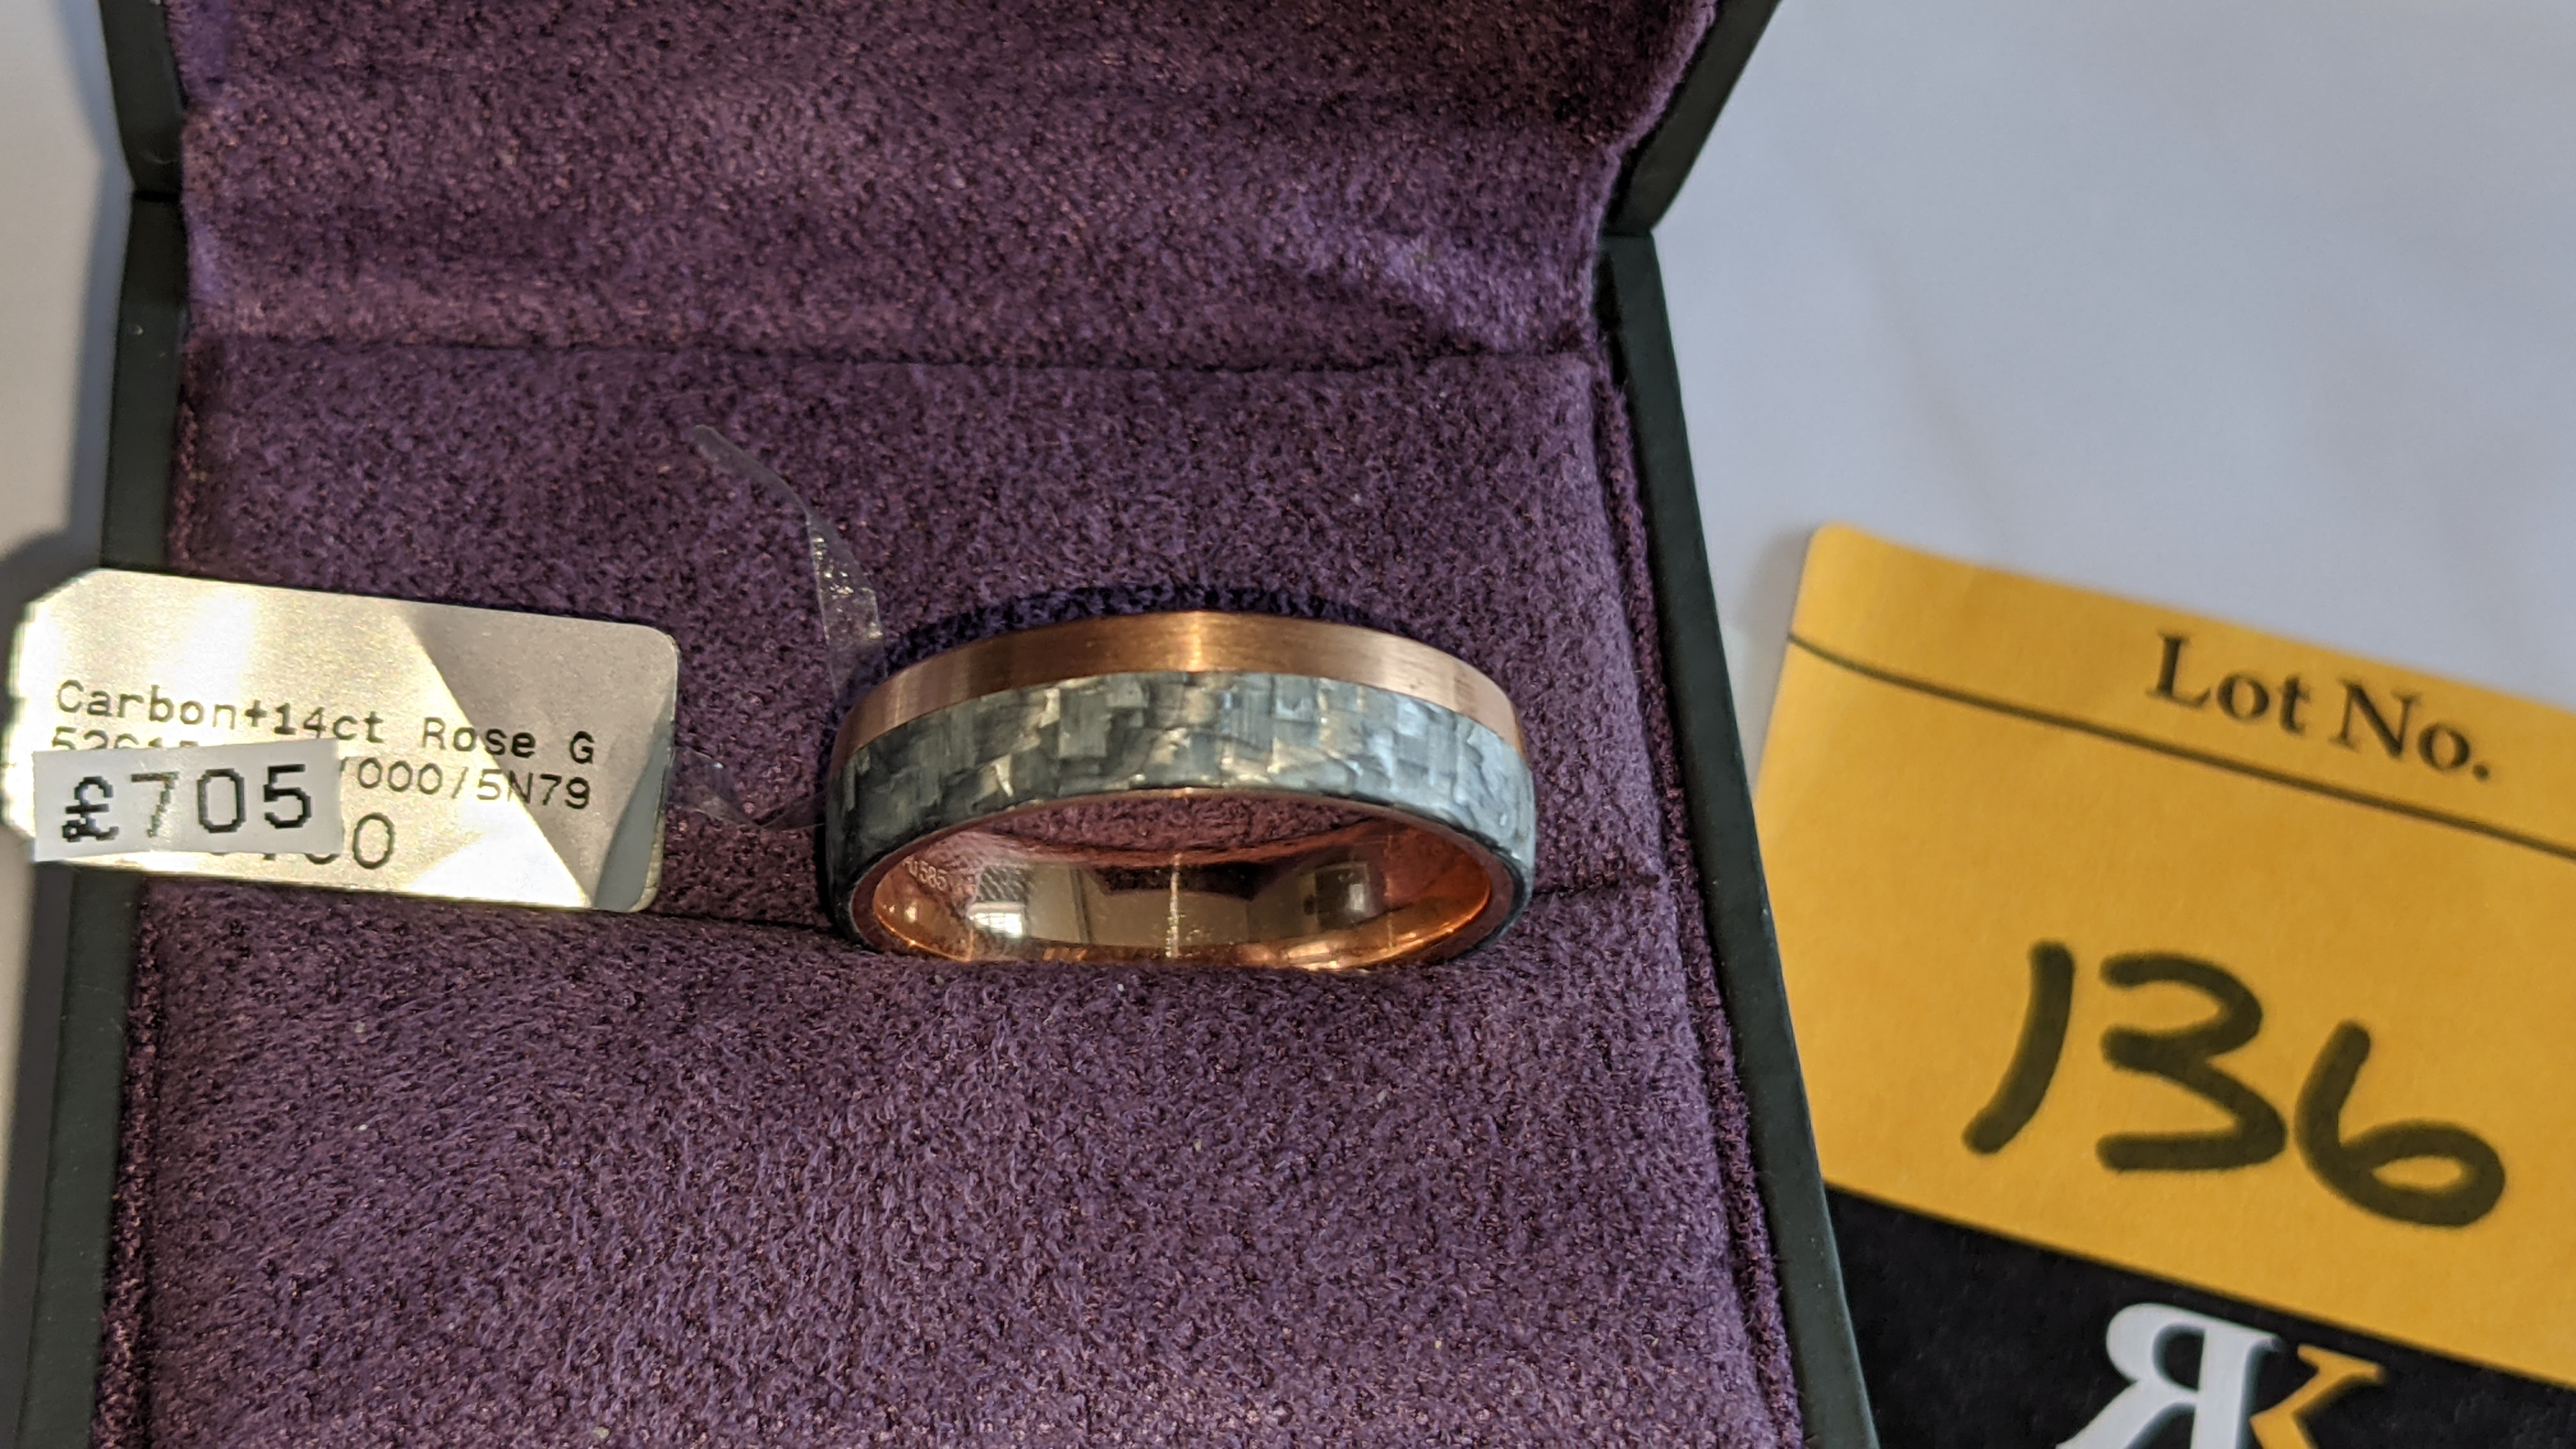 Carbon & 14ct rose gold ring RRP £705 - Image 4 of 13